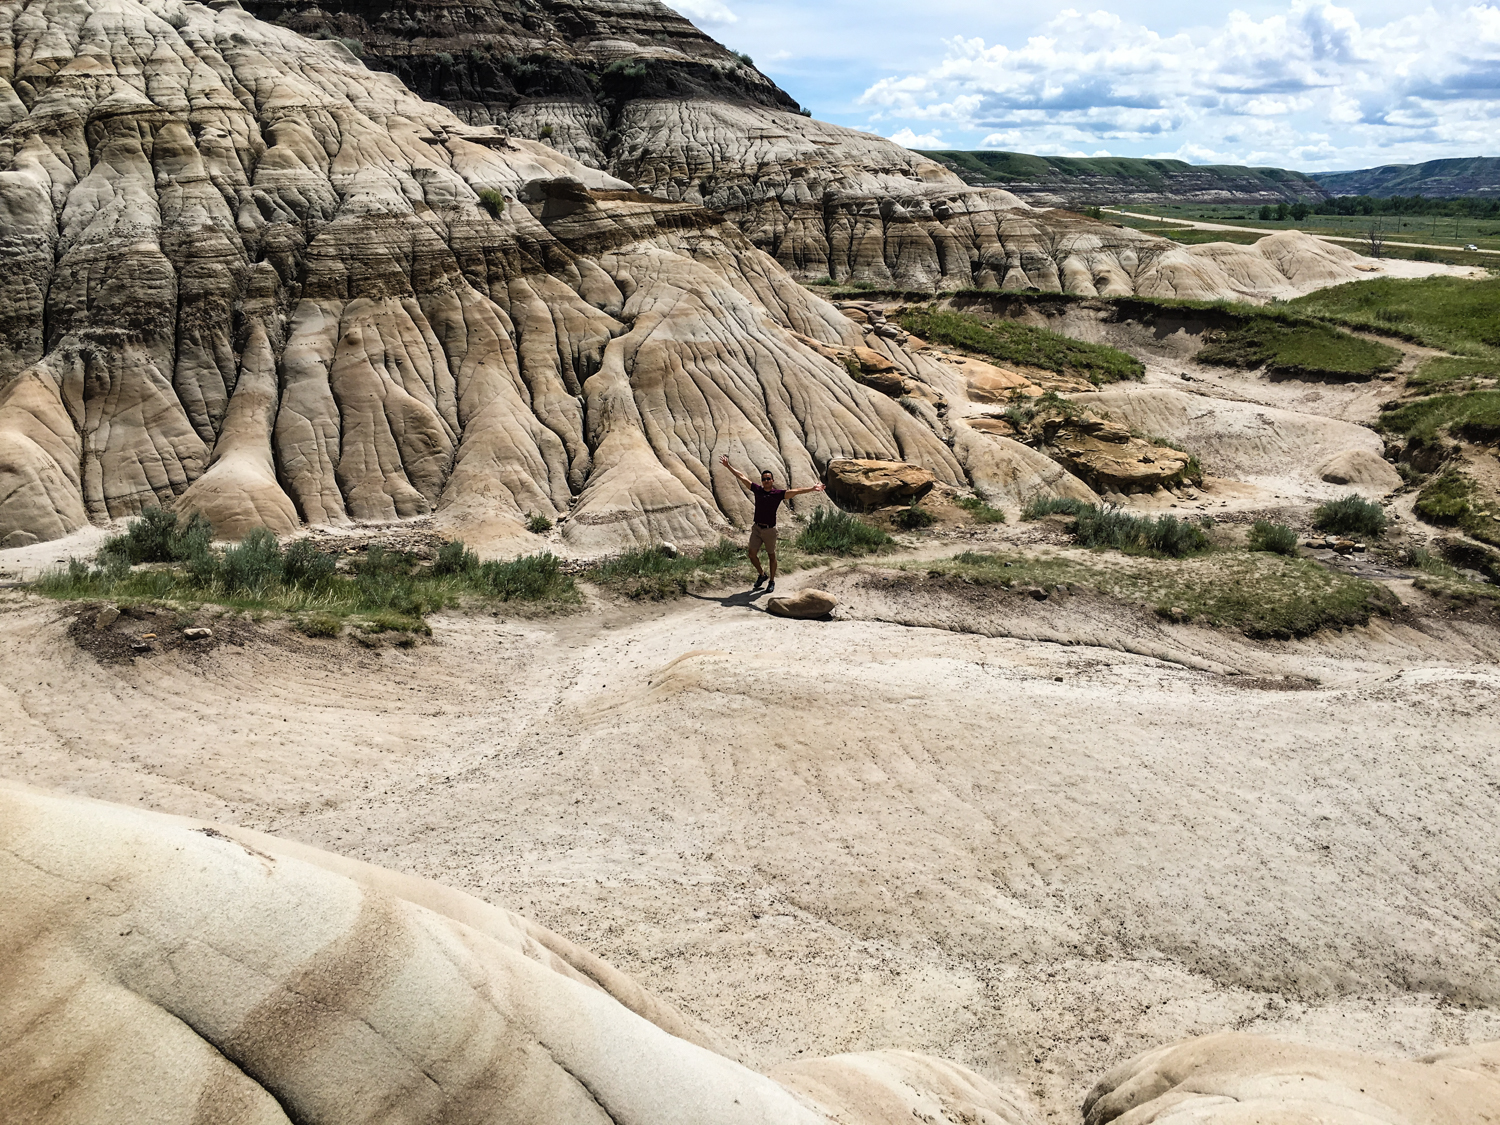 The area around the Hoodoos Trail is super cool